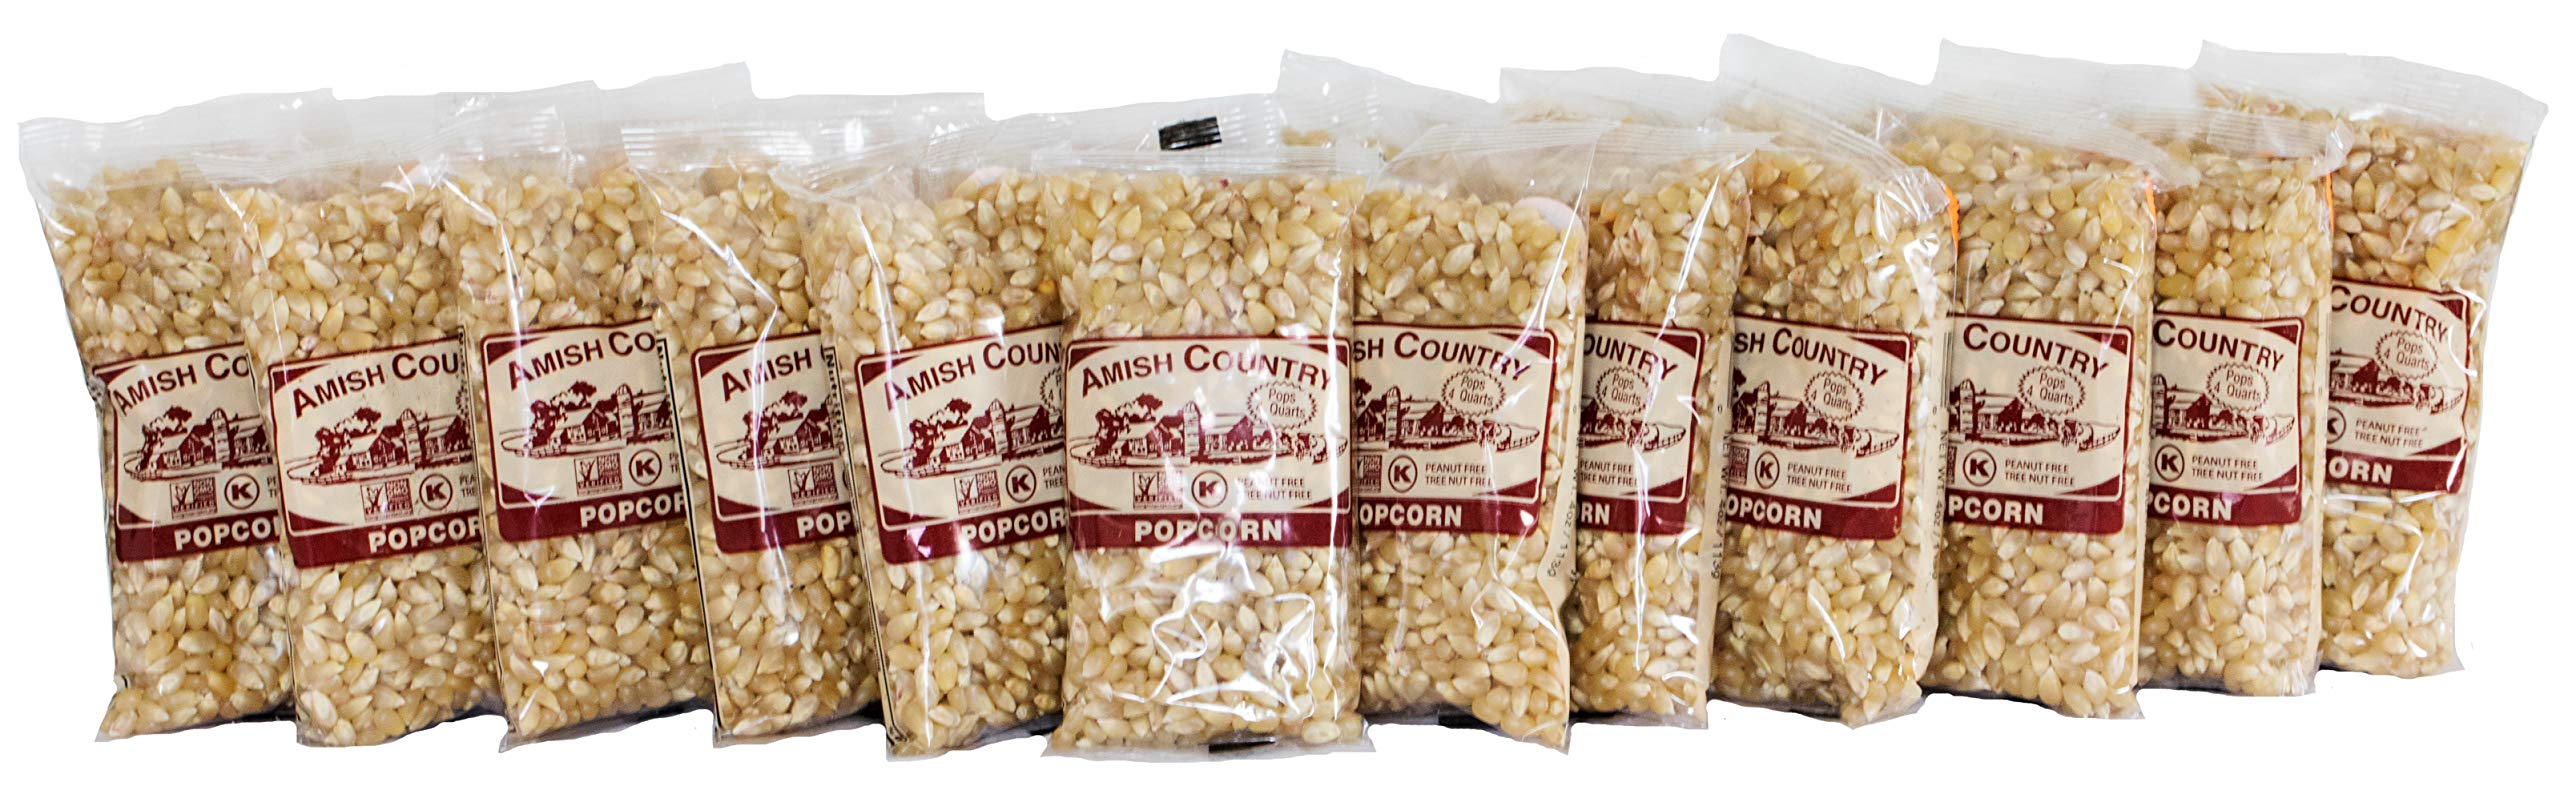 Amish Country Popcorn - Old Fashioned Baby White - (4 Ounce - 24 Bags) - Small & Tender Popcorn - With Recipe Guide by Amish Country Popcorn (Image #1)